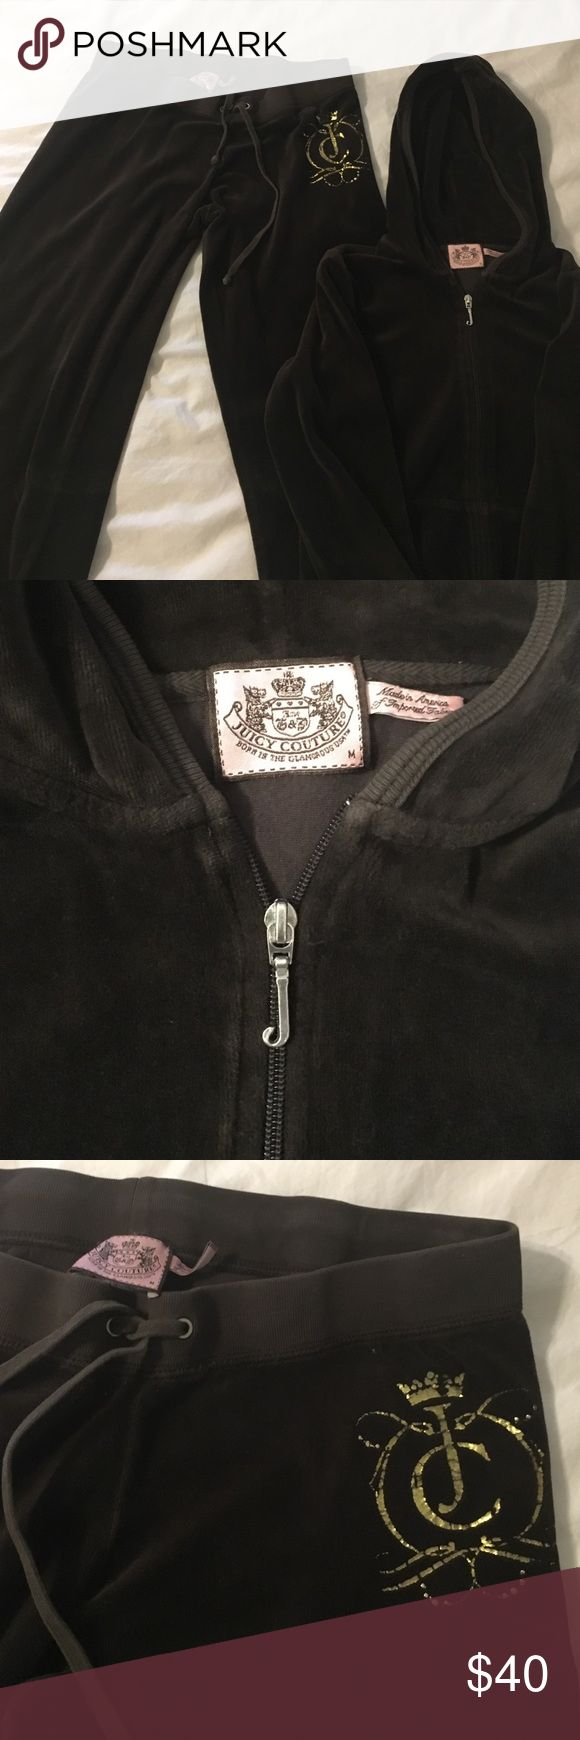 Juicy Couture Velour jumpsuit chocolate brown Juicy Couture chocolate brown velour jumpsuit. Authentic. Juicy Couture Other